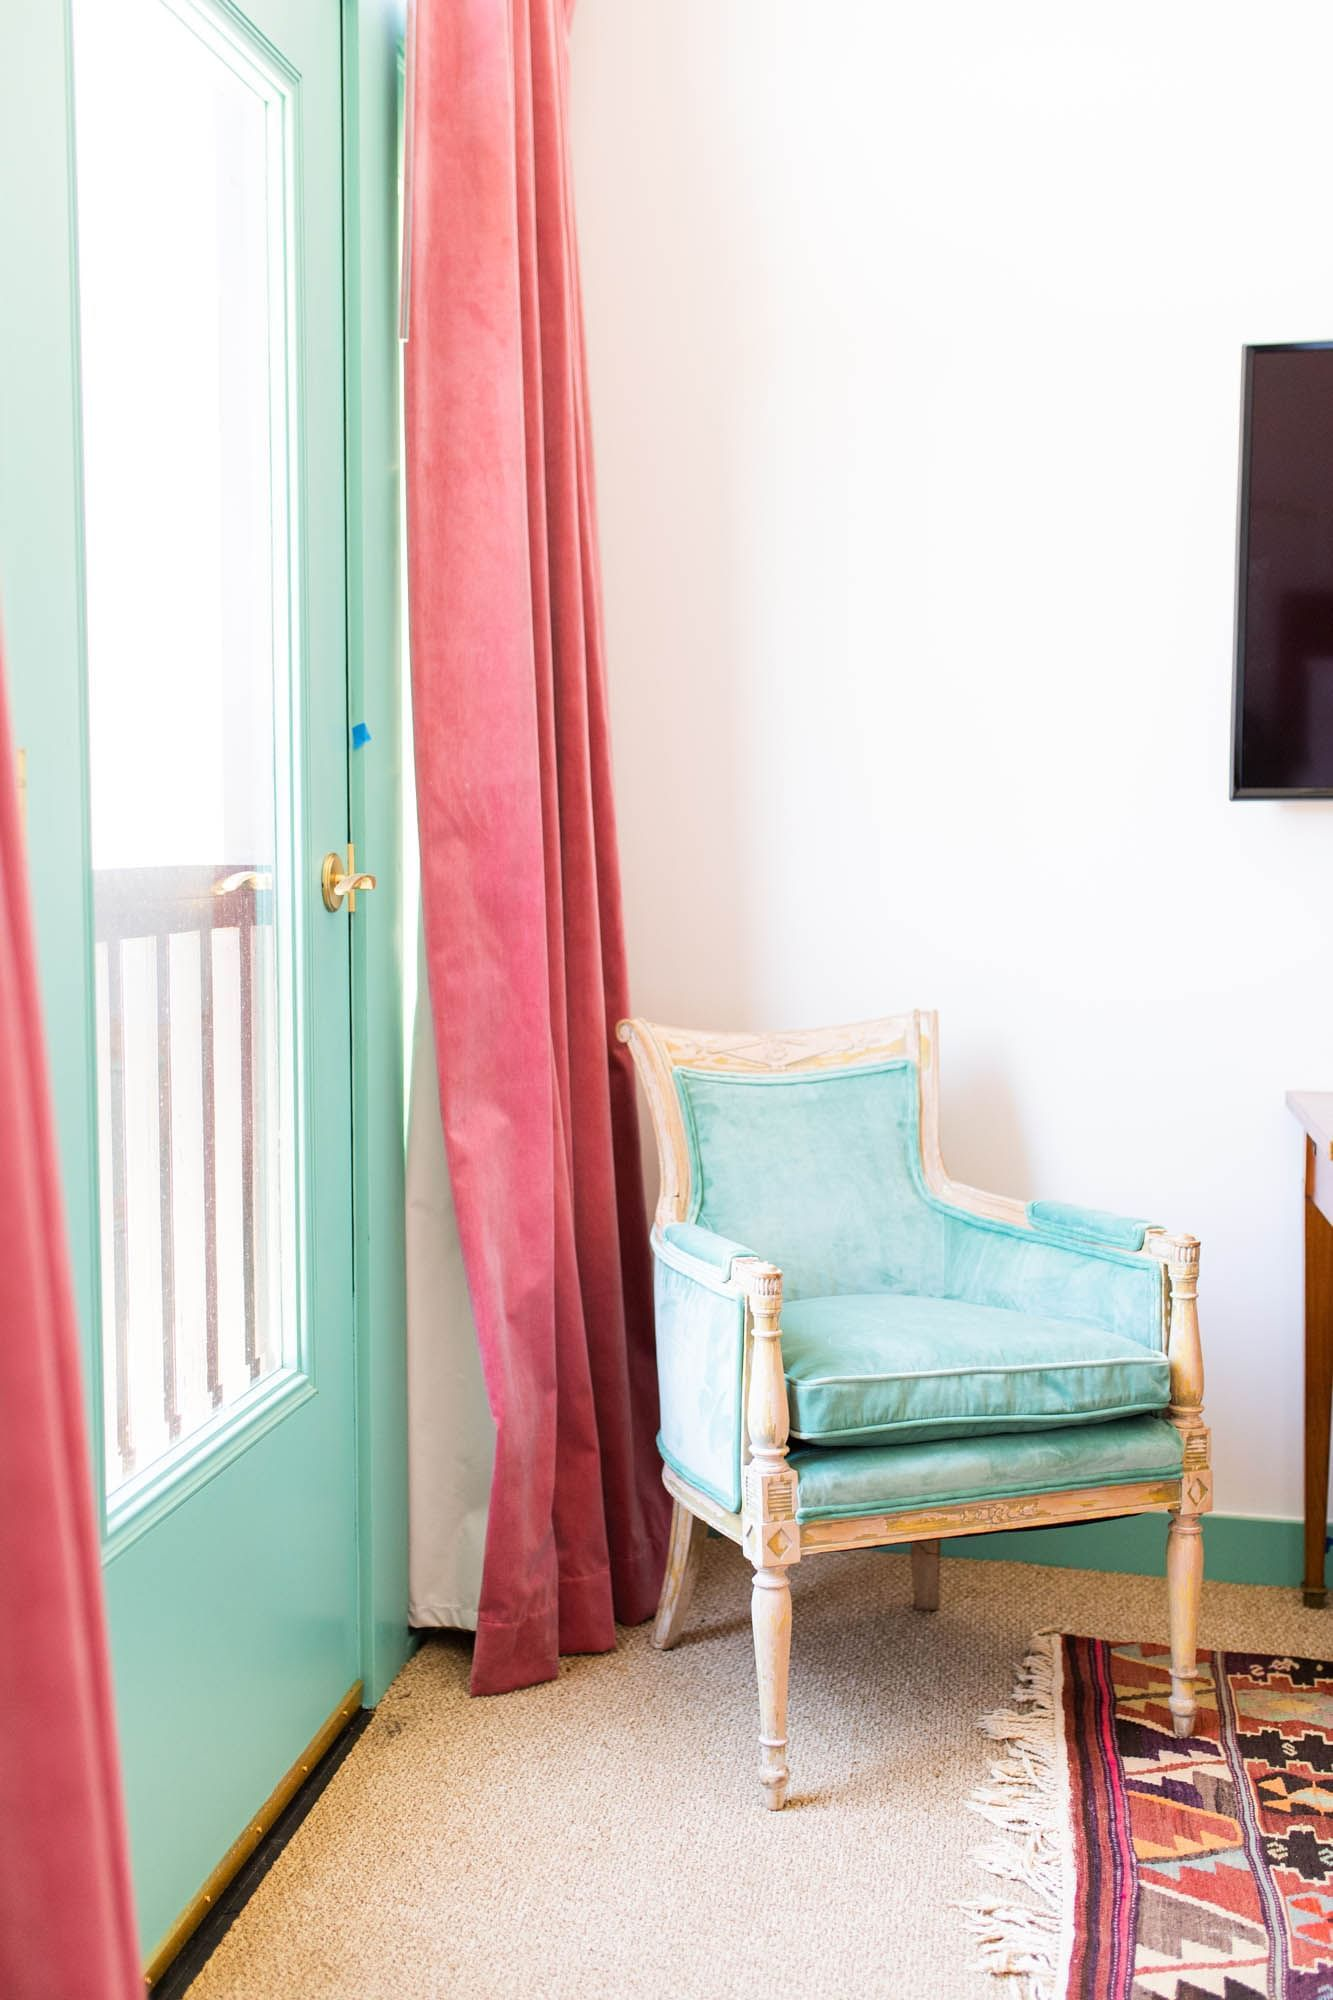 blue door and blue chair in white room with pink curtains